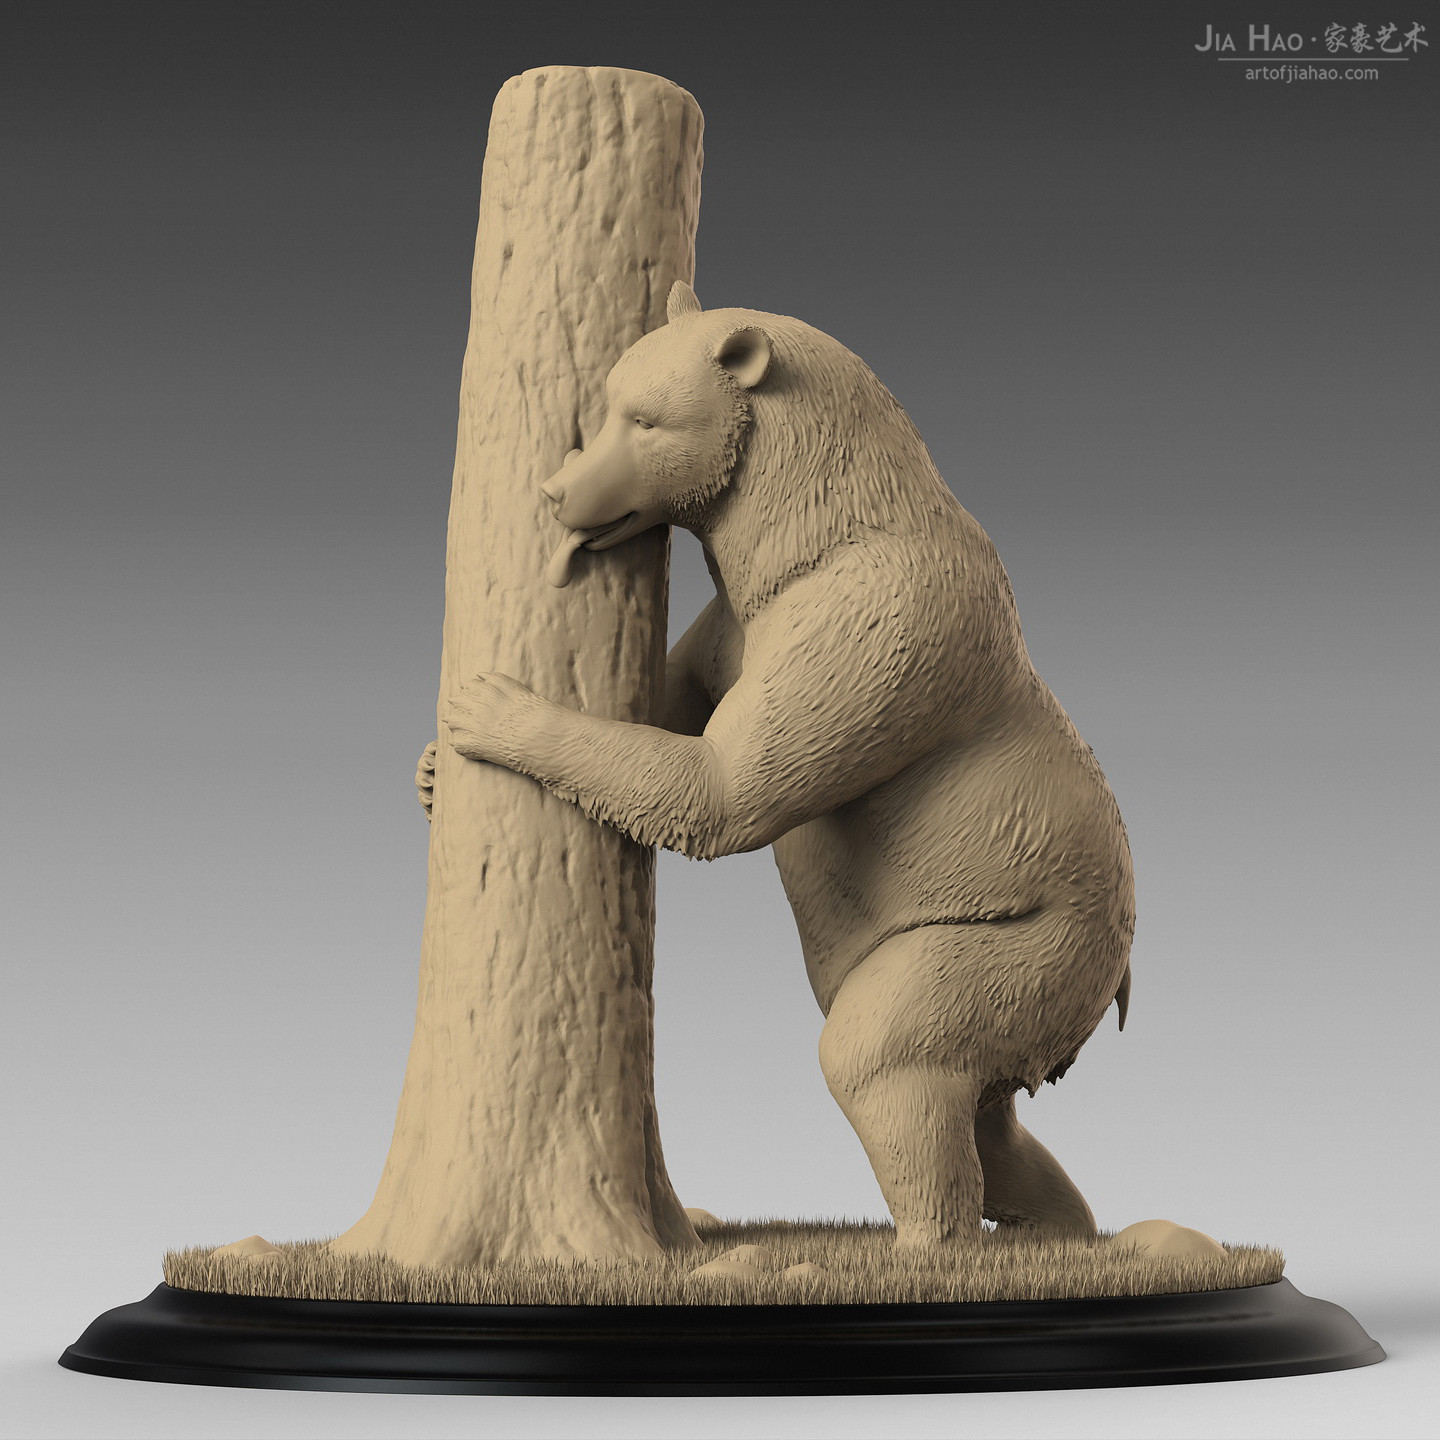 Jia hao brownbear digitalsculpturea 01